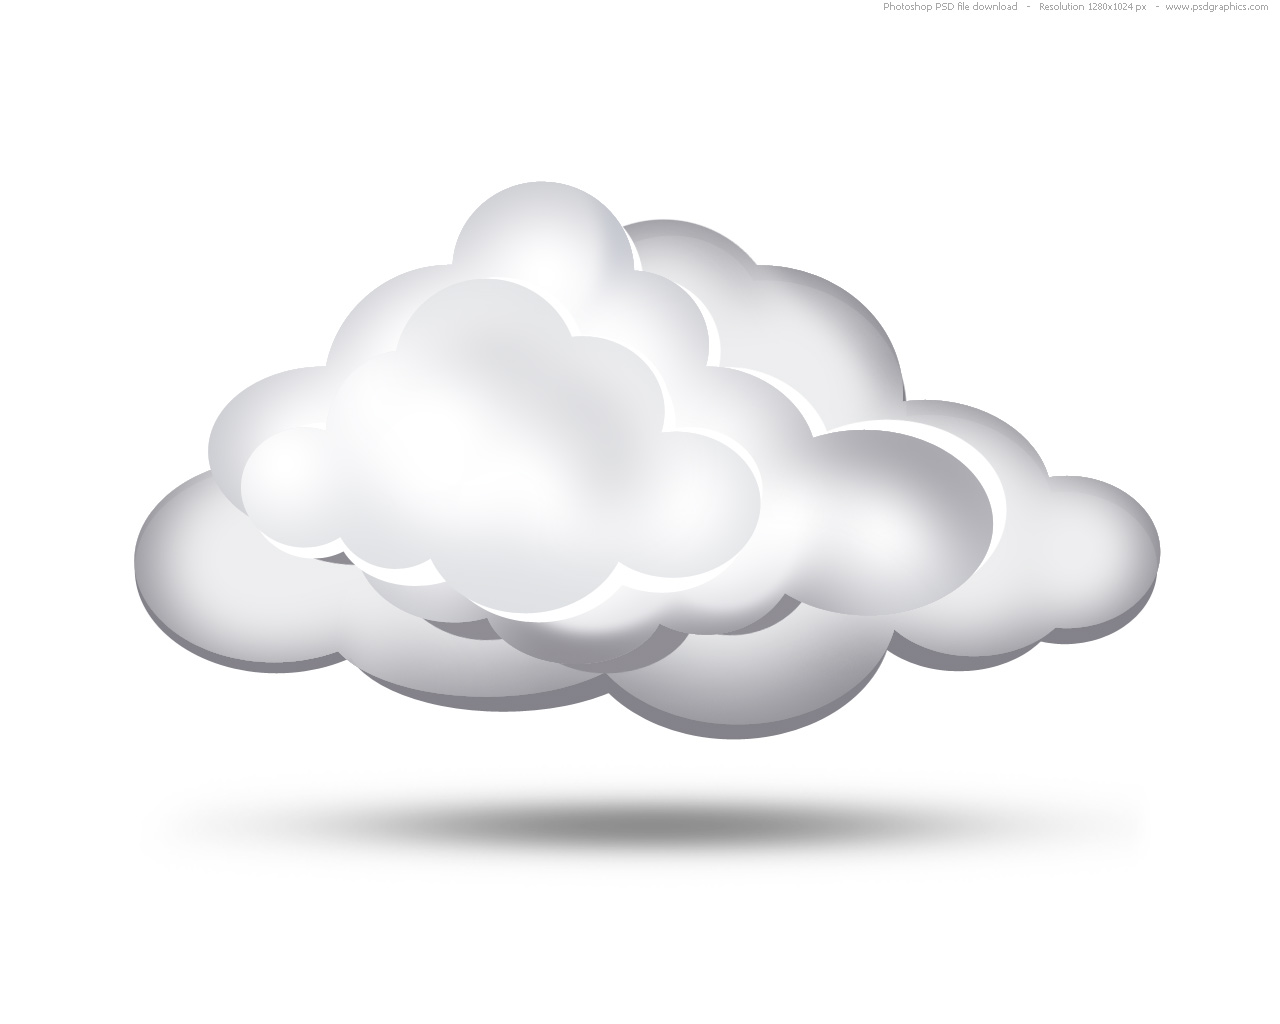 Shaped Clouds Csp15011954 Search Clip Art Illustration Drawings